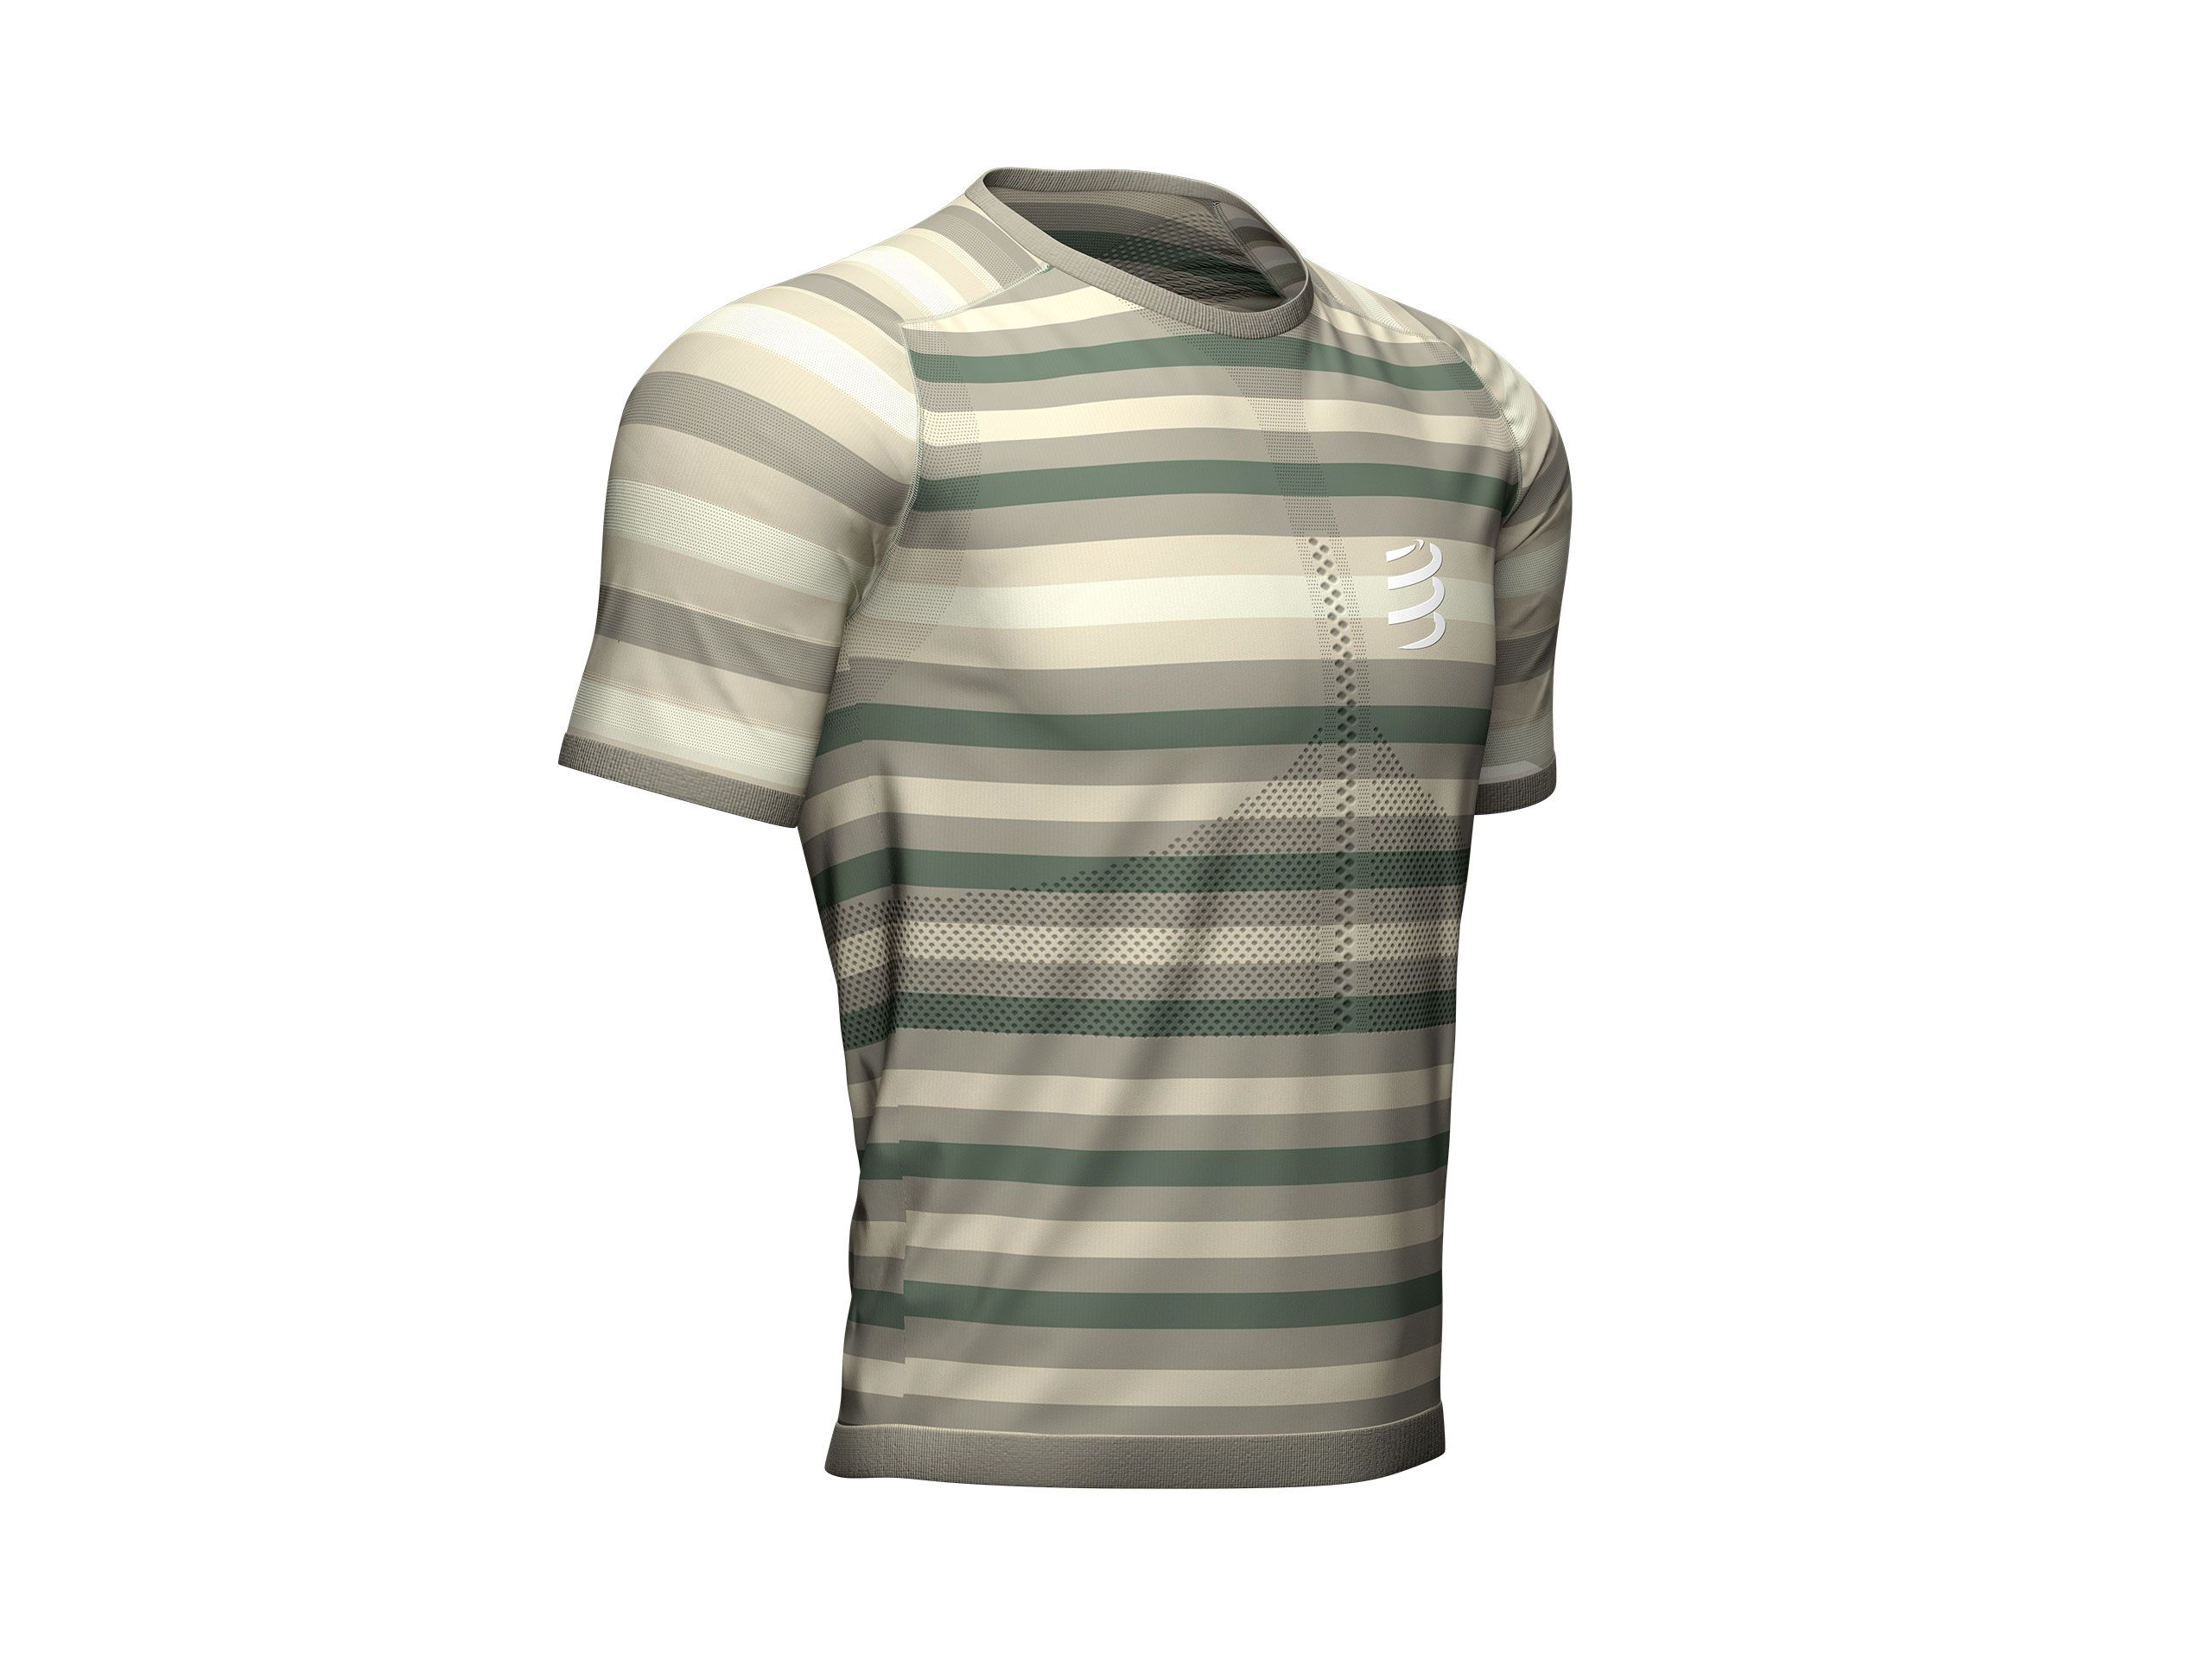 Racing SS Tshirt - Dusty Olive